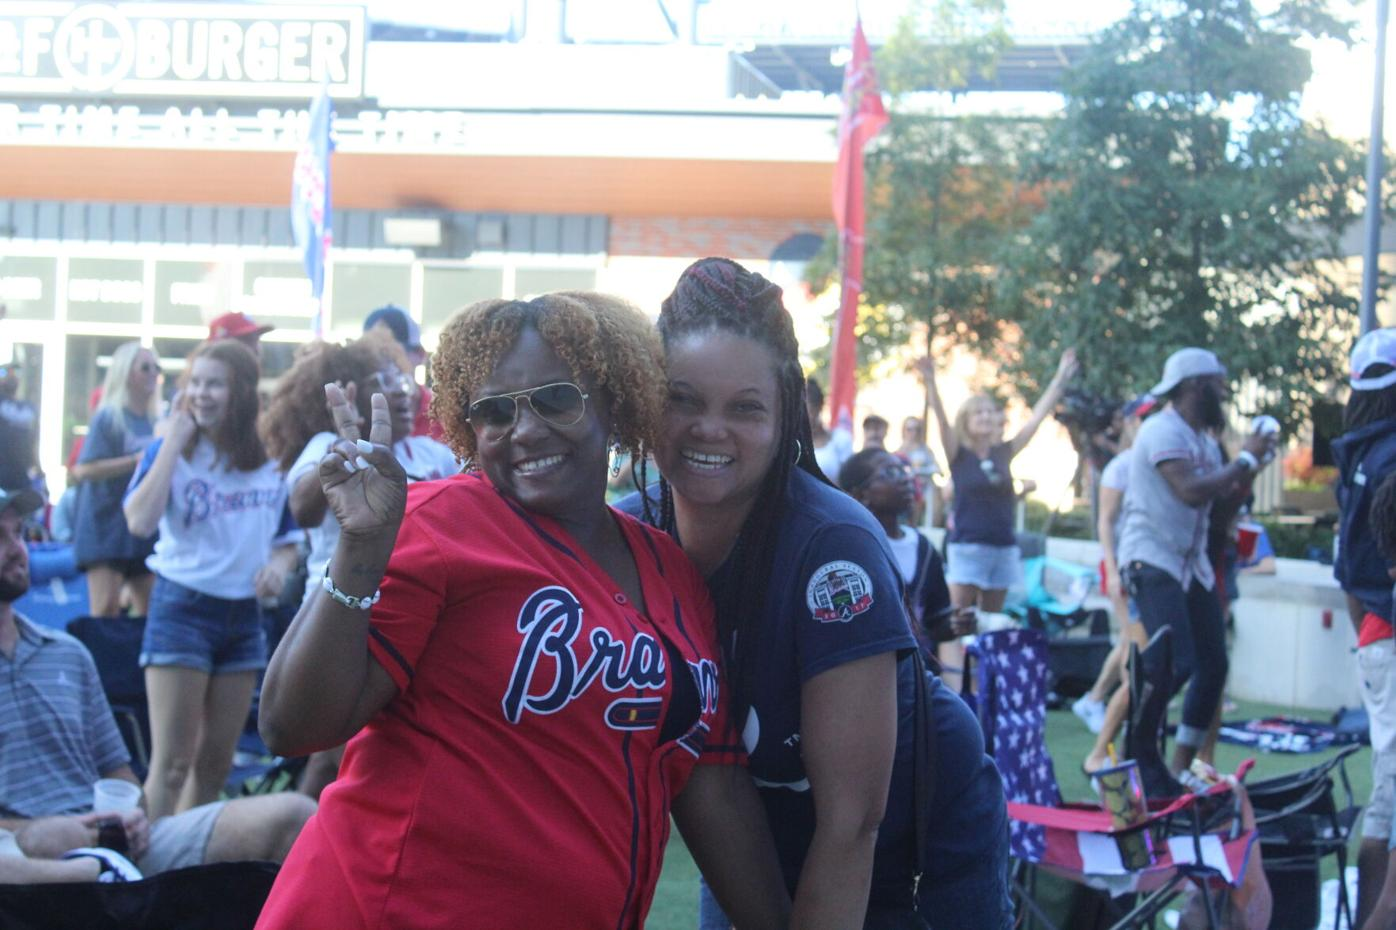 Braves watch party 10/8/21